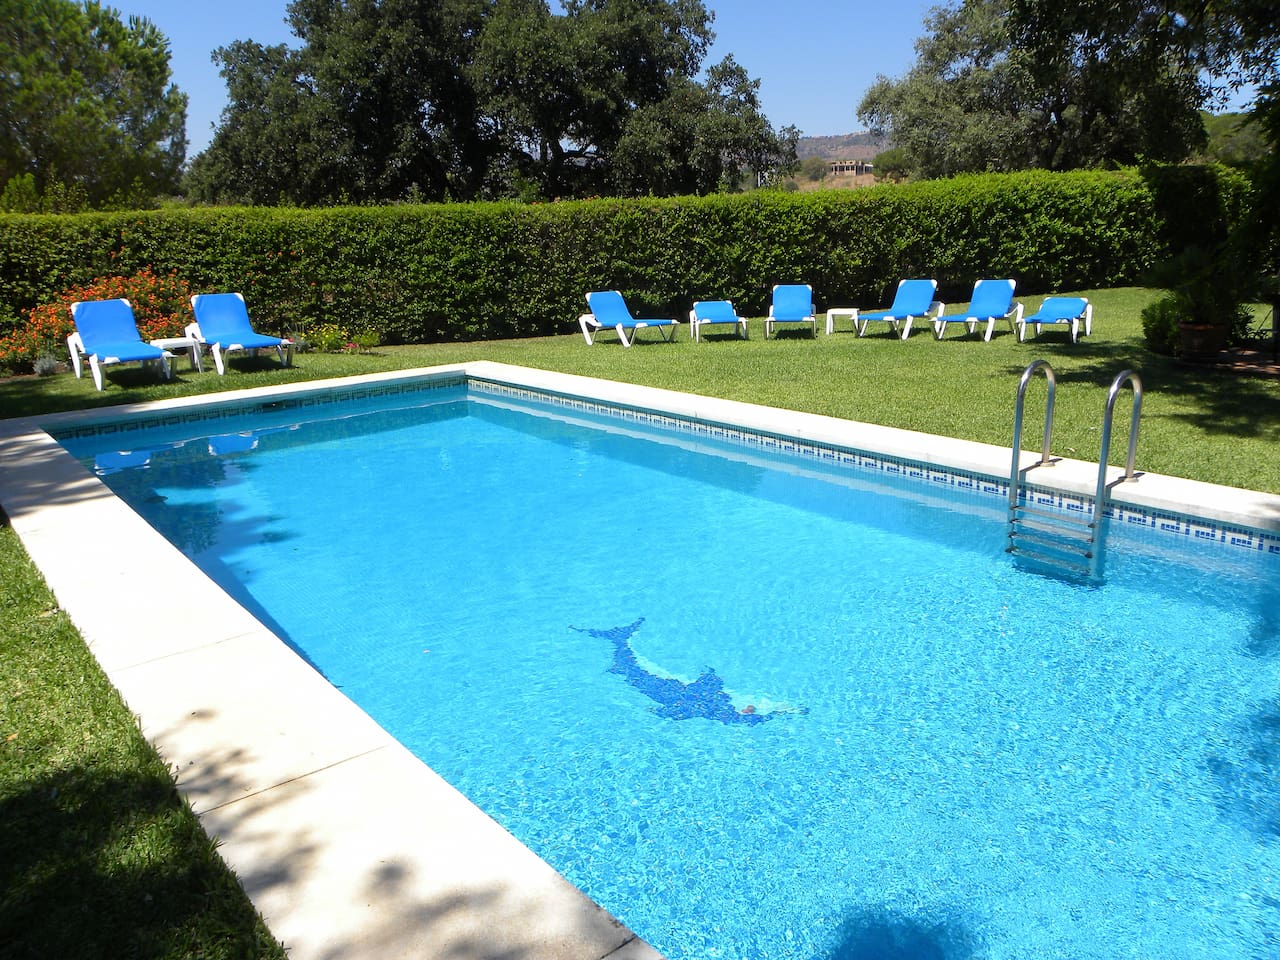 Swimming pool and deck chairs